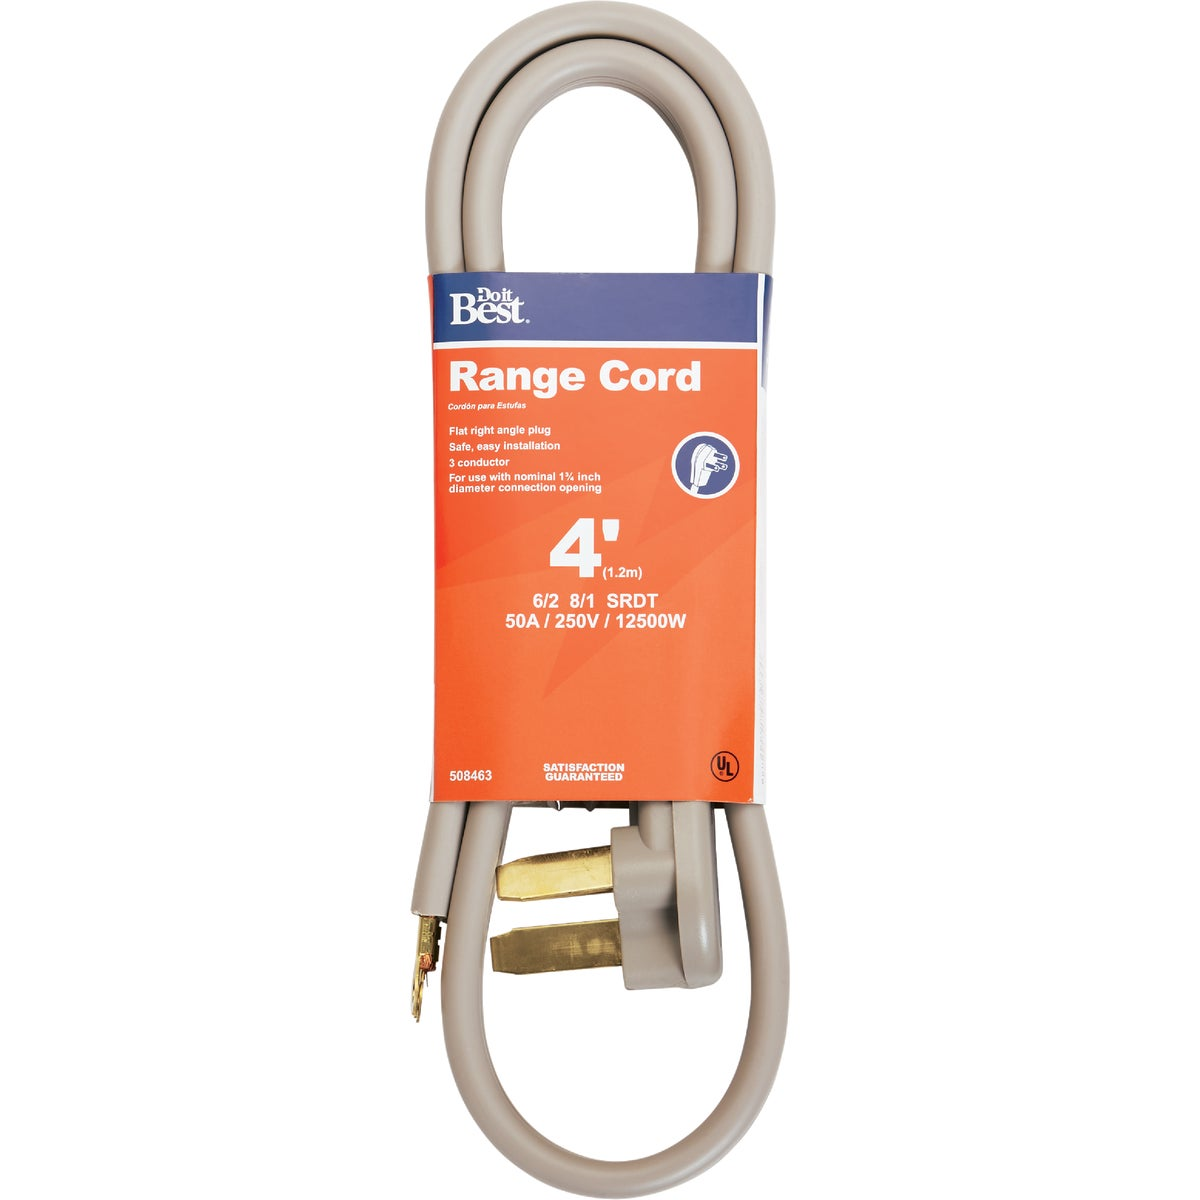 4' 50A RANGE CORD - 550984 by Coleman Cable Hwg